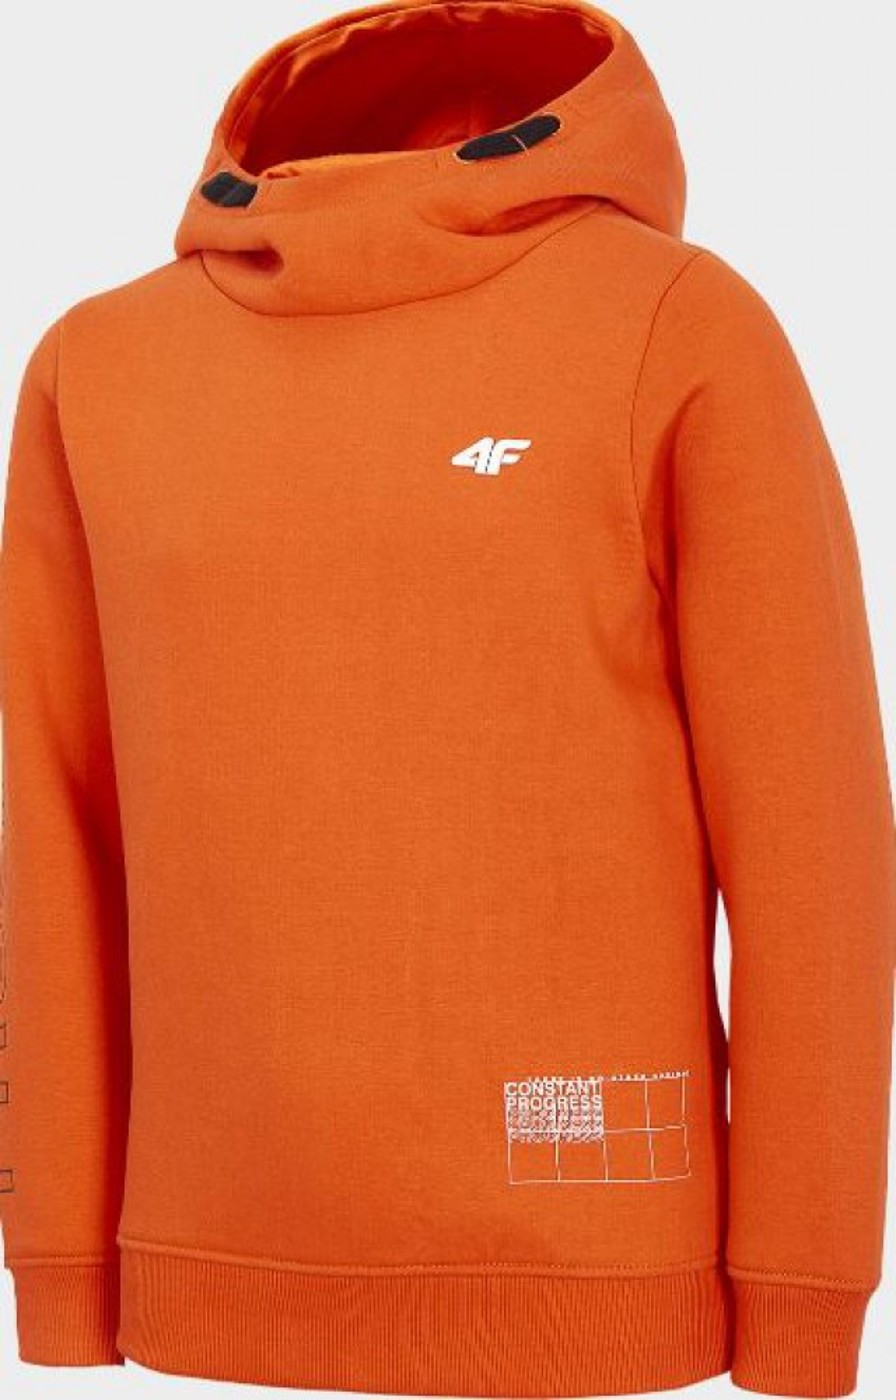 4F Boys Sweater mit Kapuze - Kinder